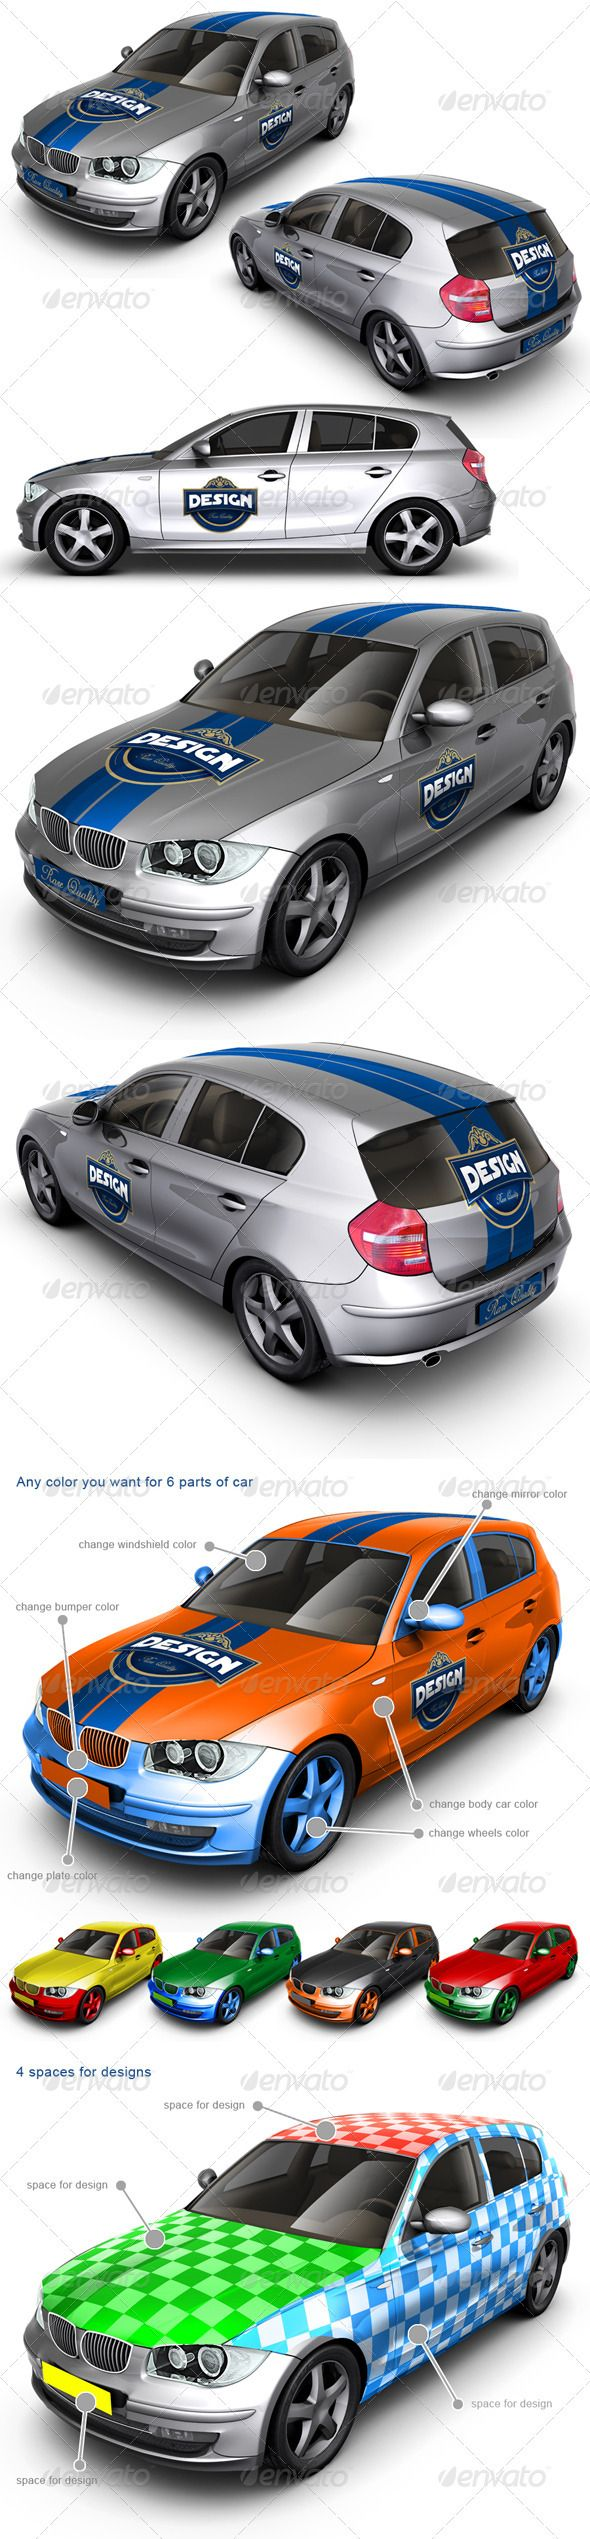 car mockup billboard mock up cars and mockup executive family car mock up